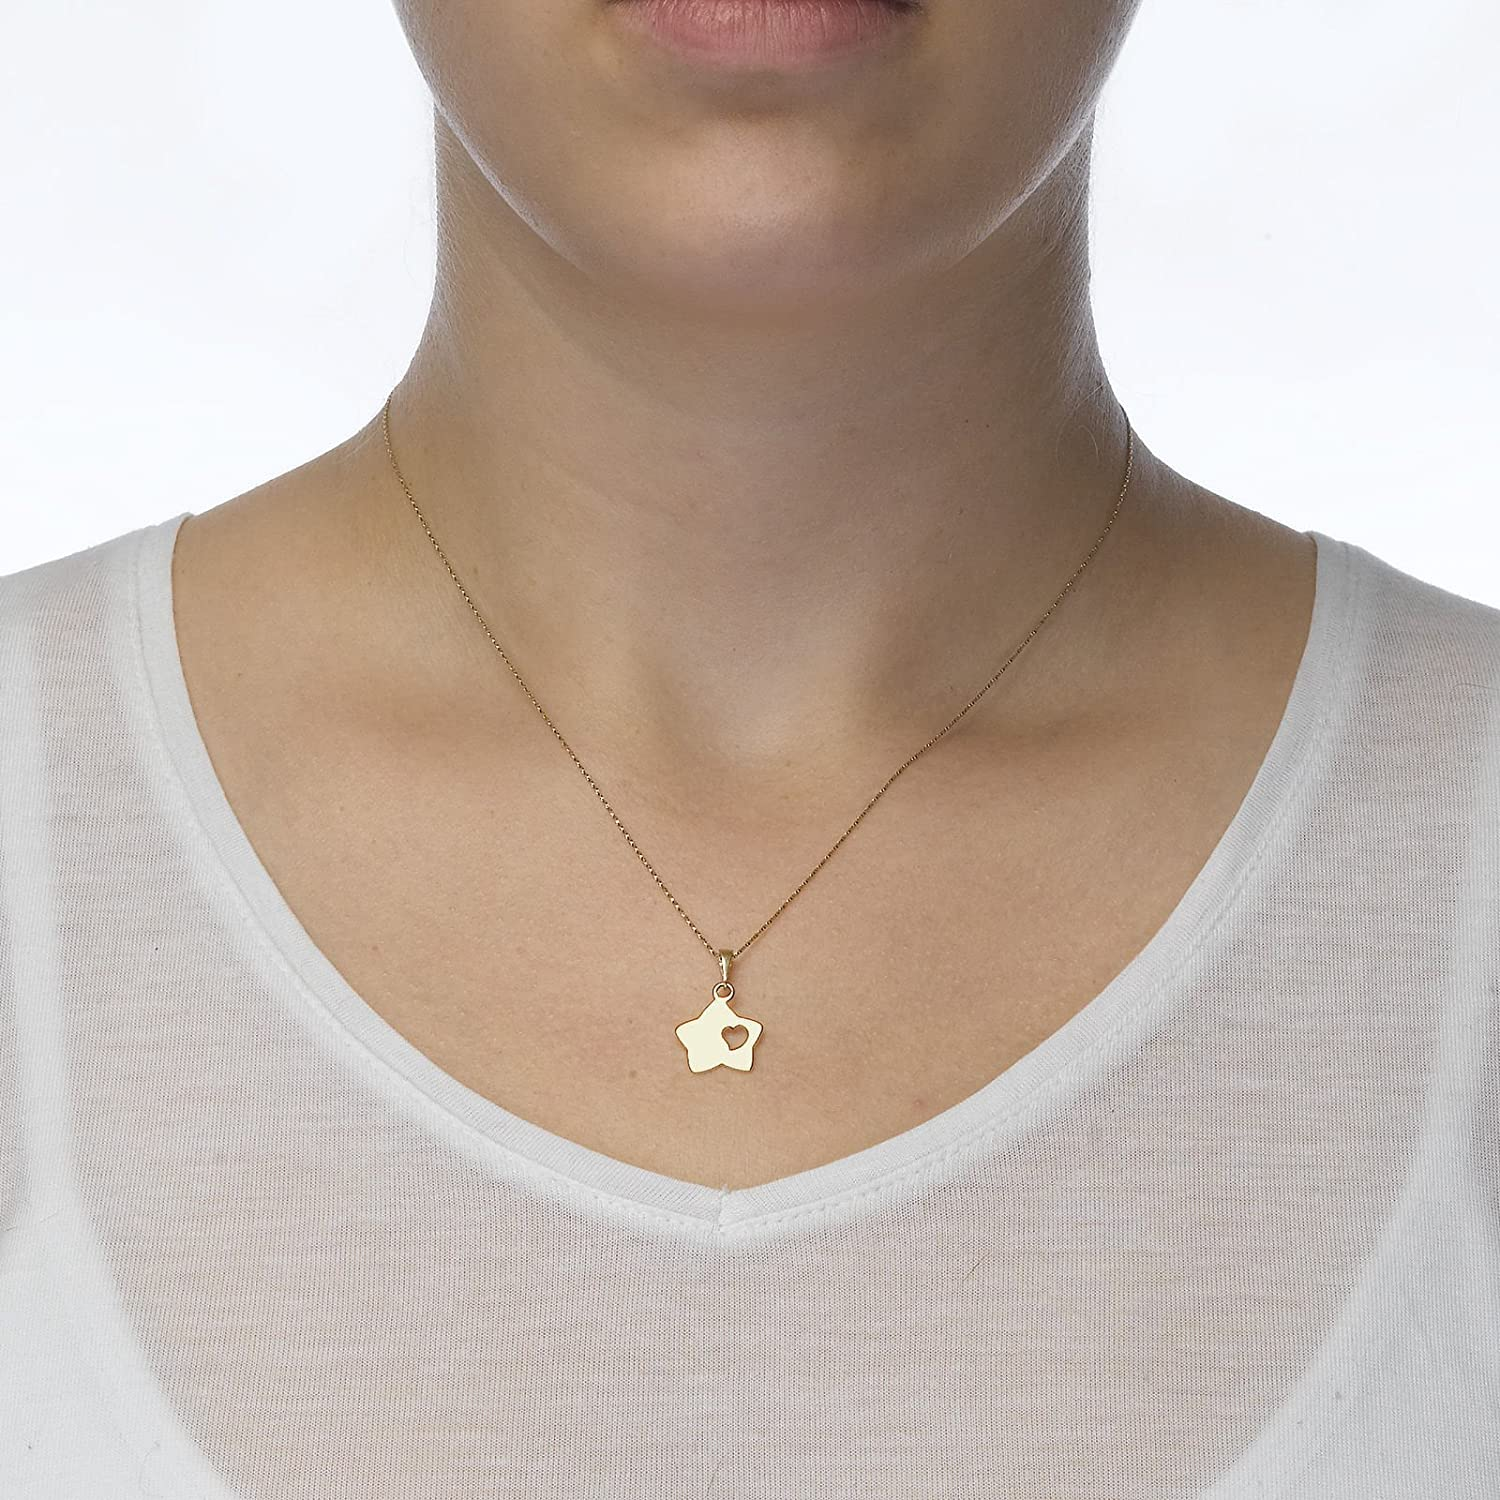 14K Yellow Gold Starry Flower Pendant With Necklace